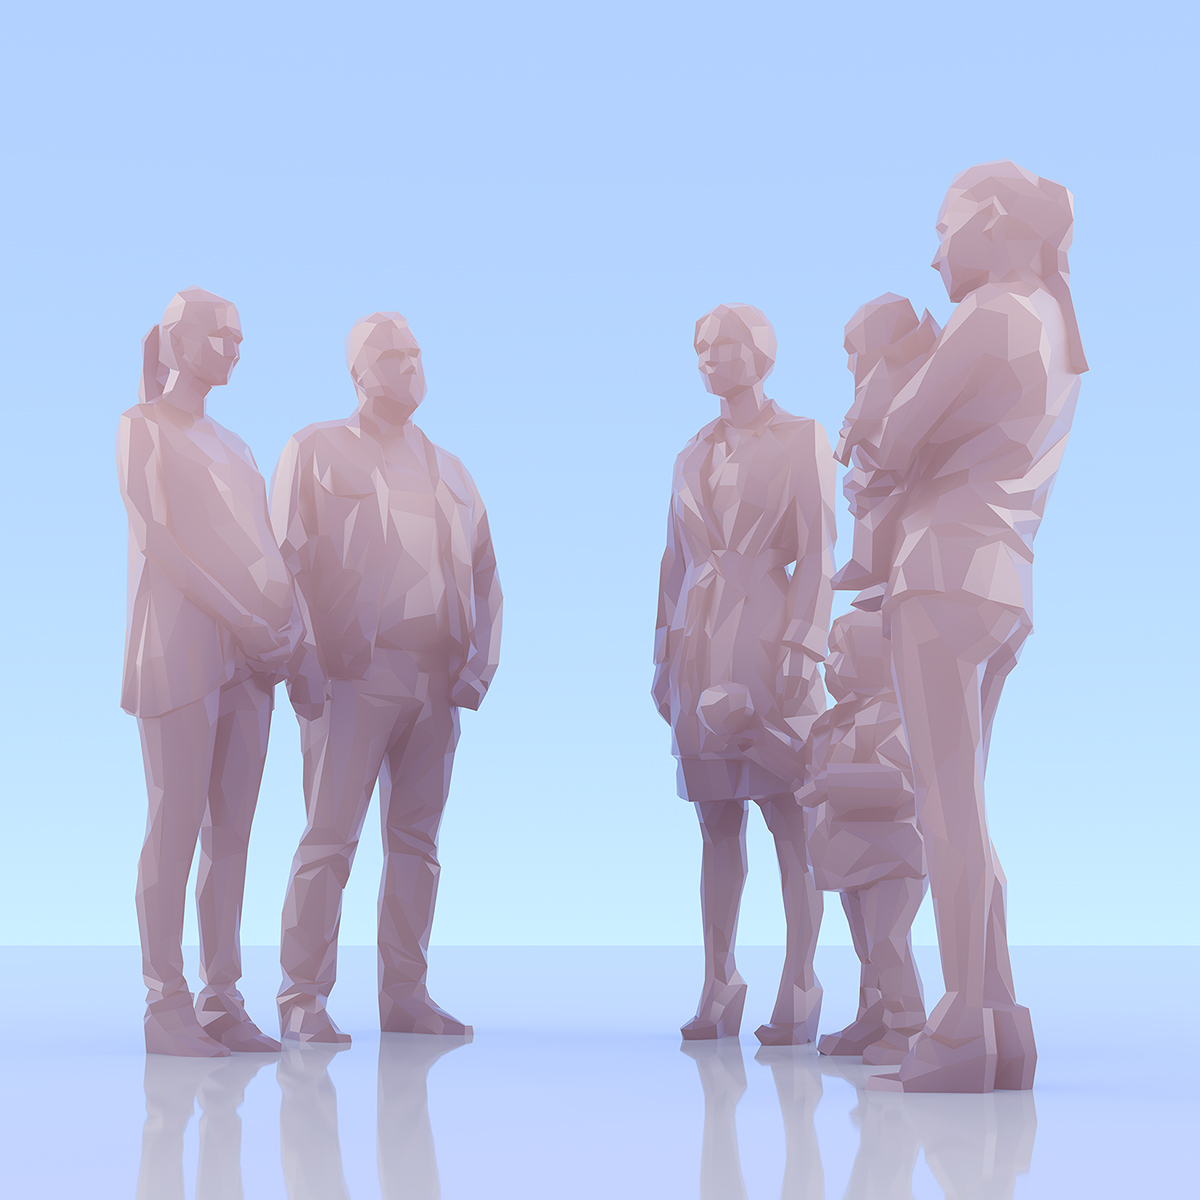 This was HomoSapiens II 009 1 - 2019 - This was HomoSapiens. II. (LowPoly People)